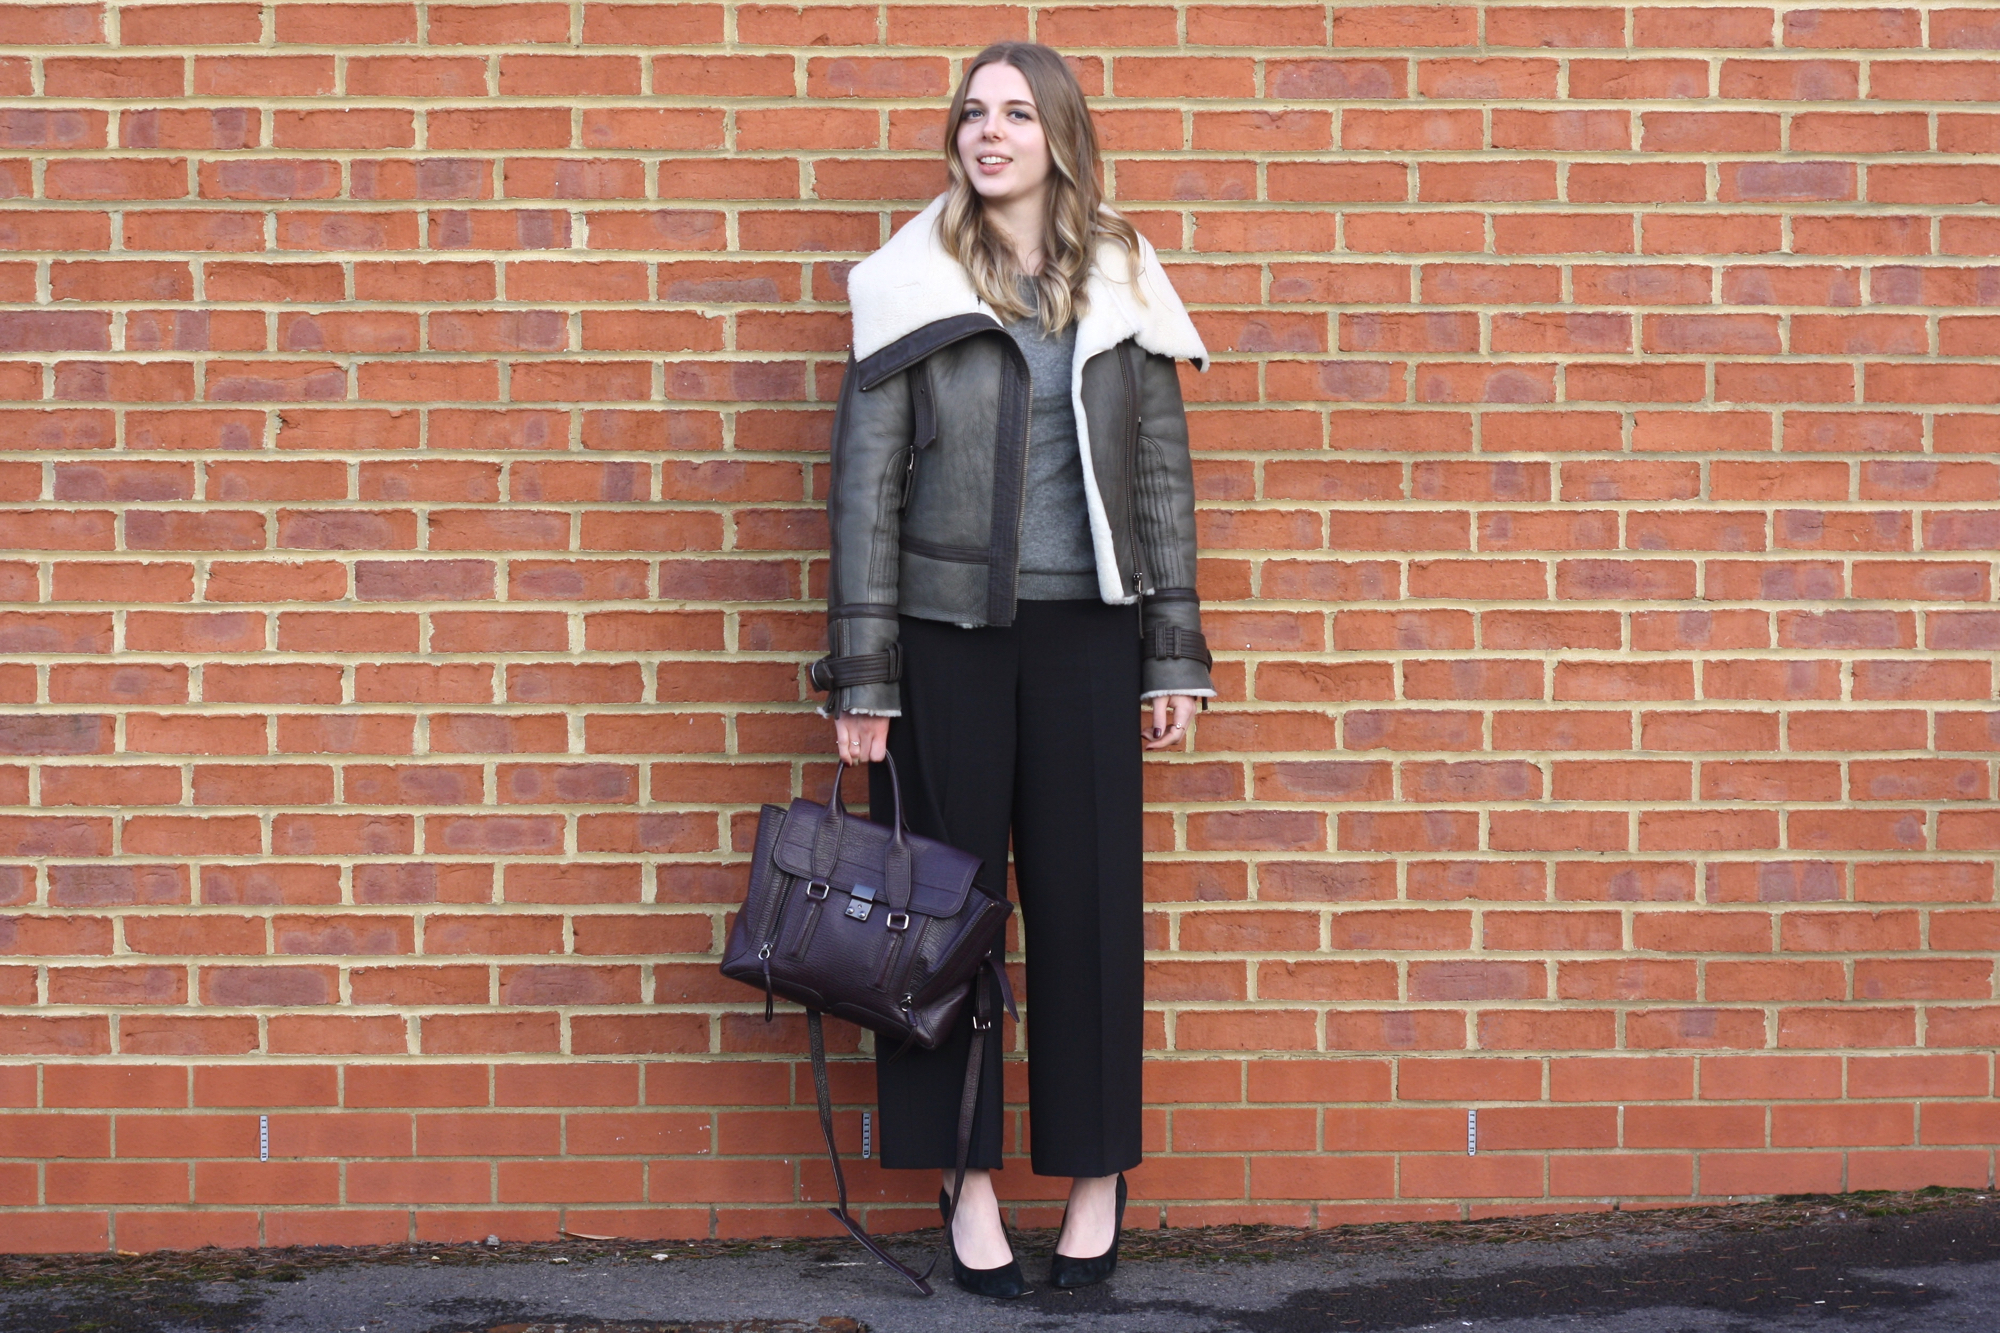 Topshop khaki aviator jacket, Zara black culottes and 3.1 Phillip Lim Pashli bag